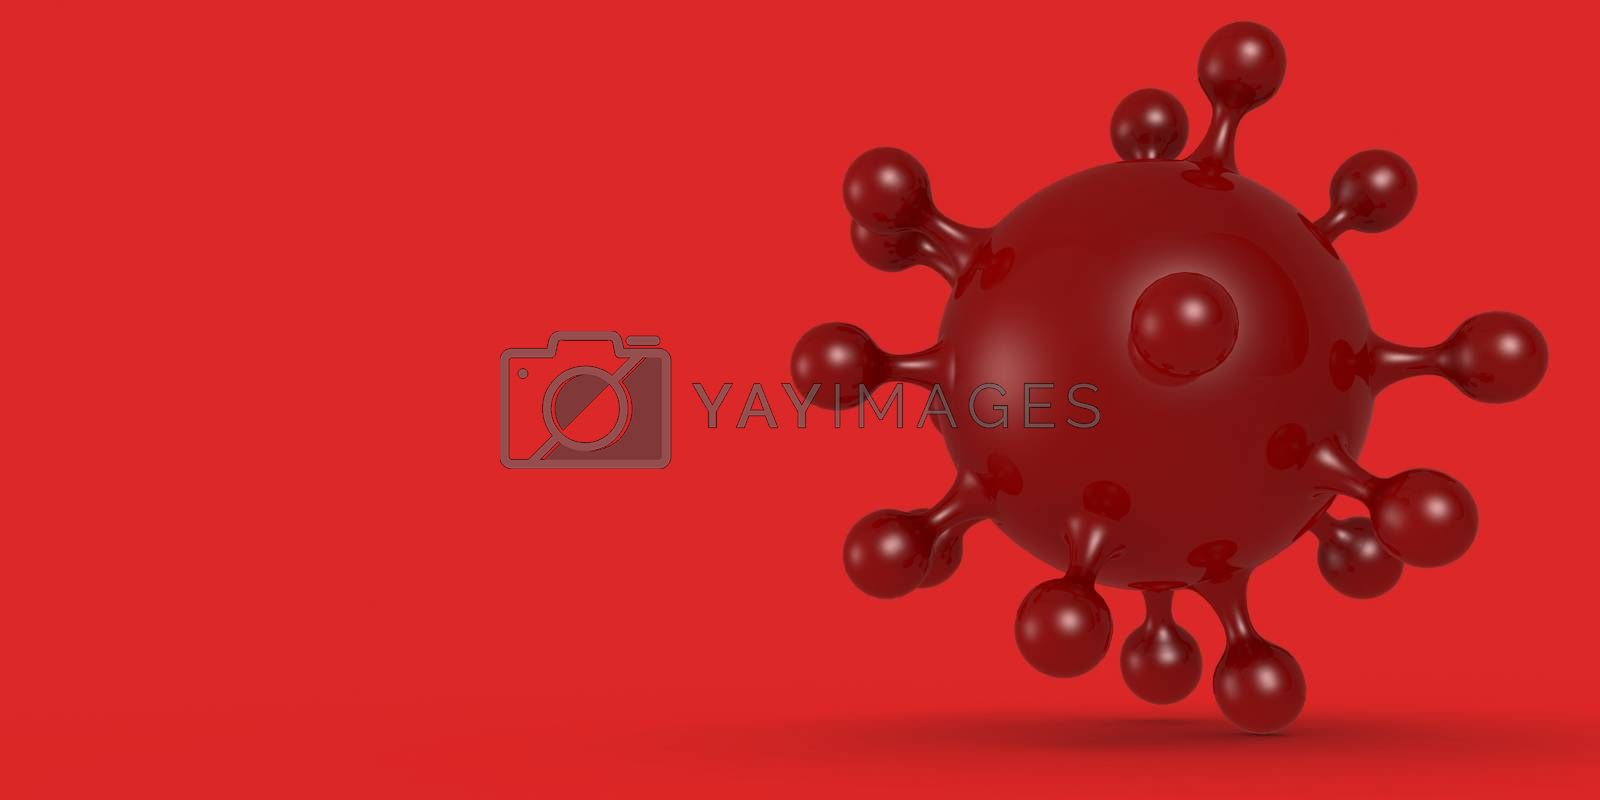 Corona virus cell in red color background, 3D rendering